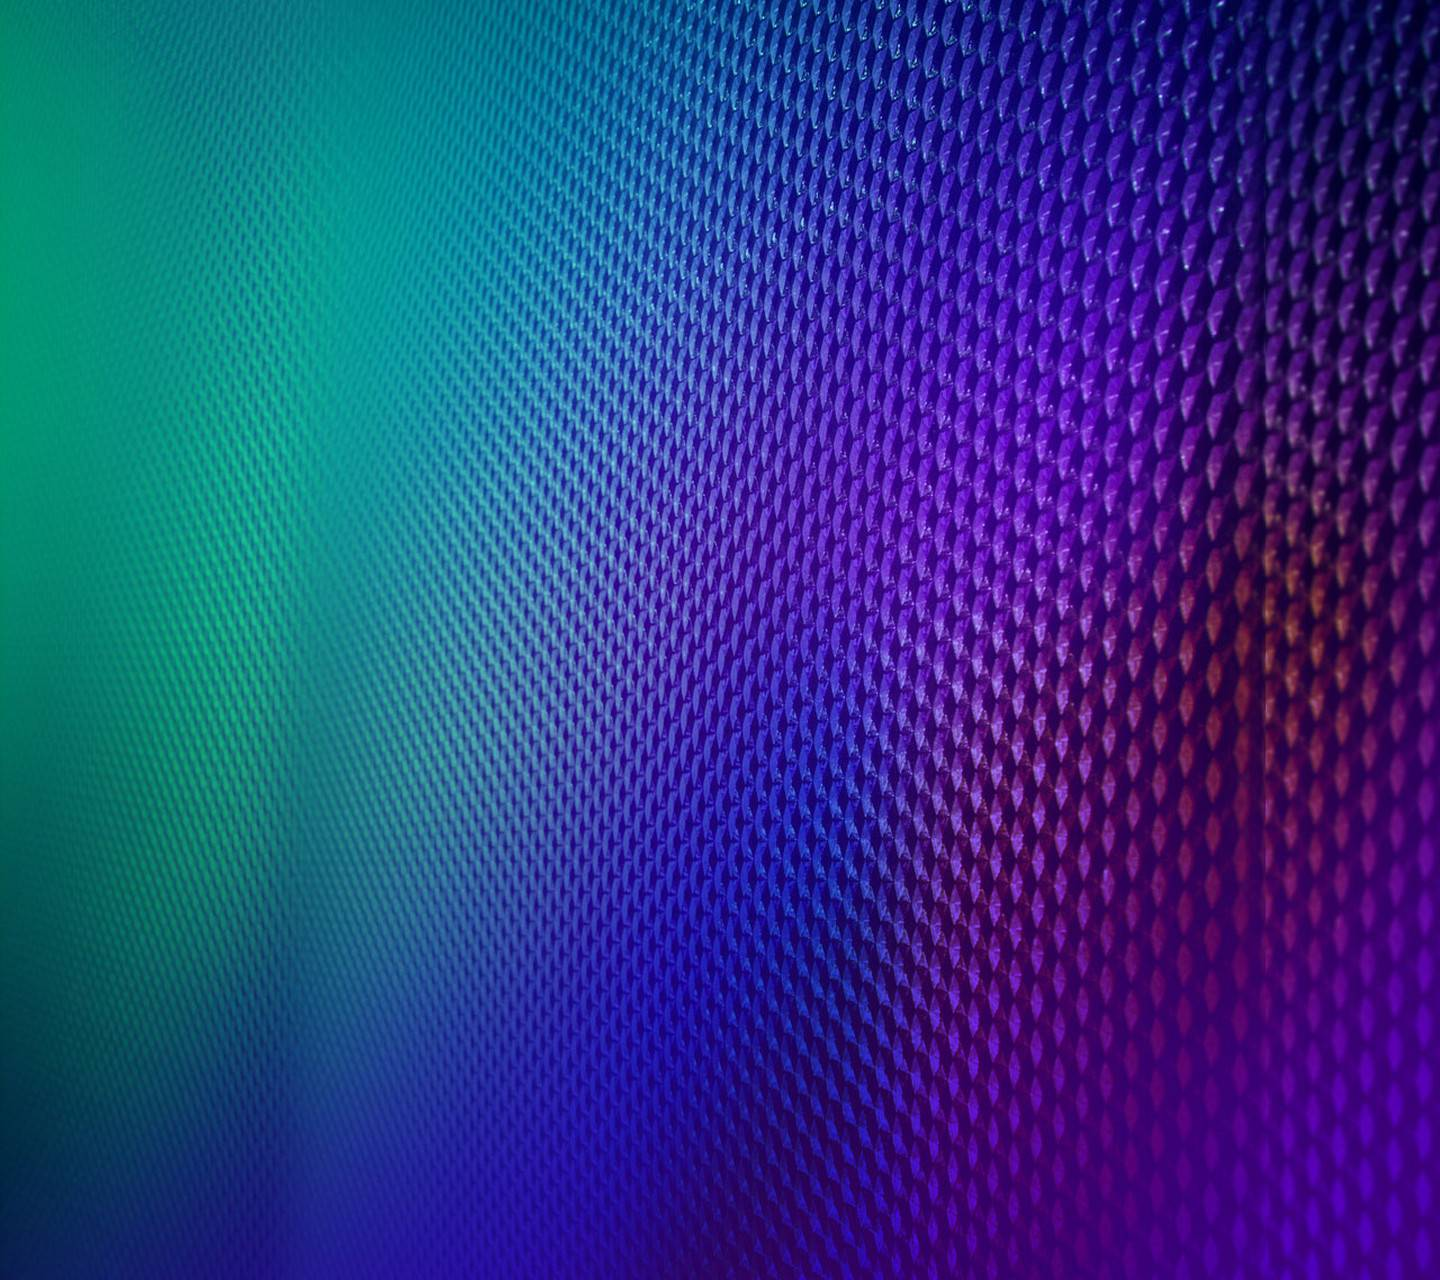 Galaxy Alpha wall008